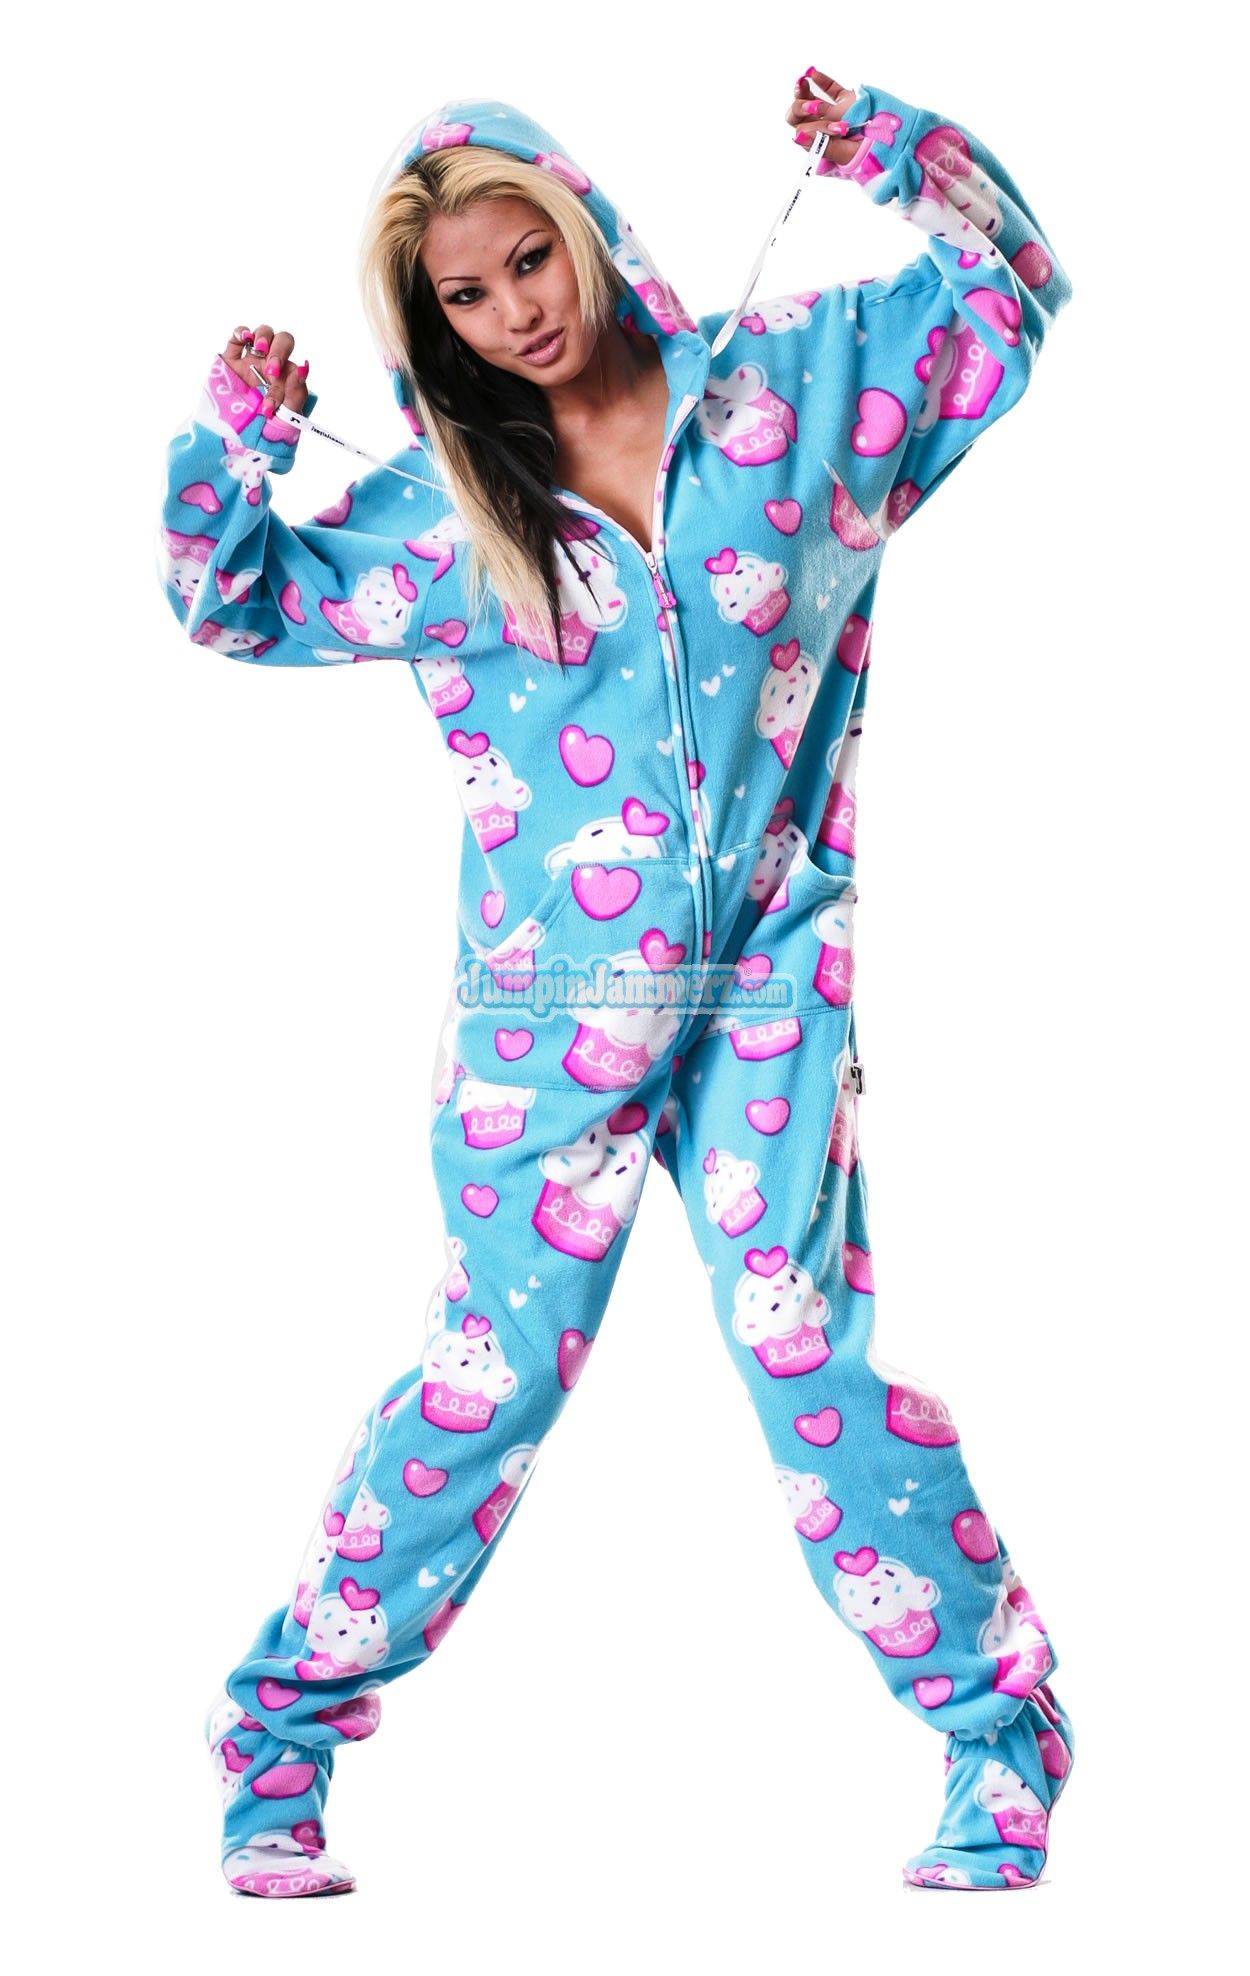 Cup Cakes Hooded Footed Pajamas Pajamas Footie Pjs